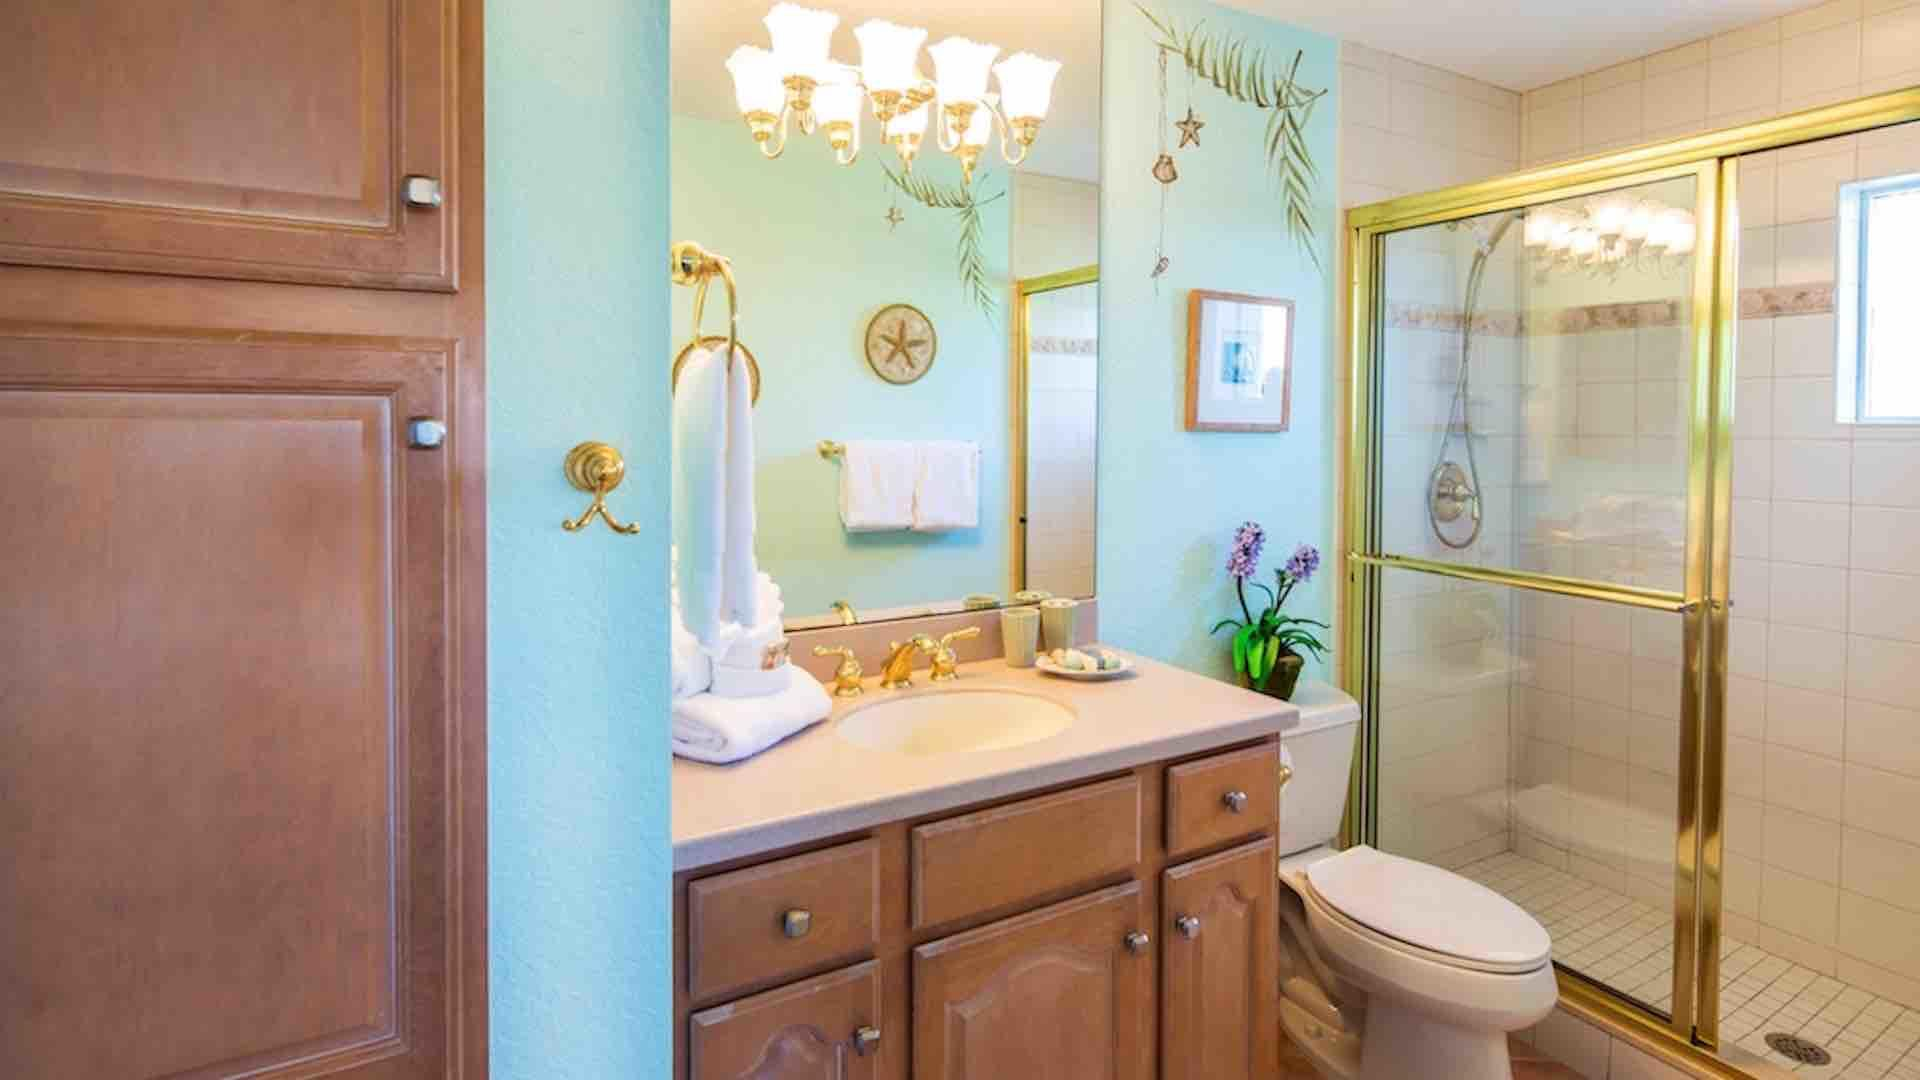 The second bathroom is located between the second and third bedrooms, with a walk-in shower...